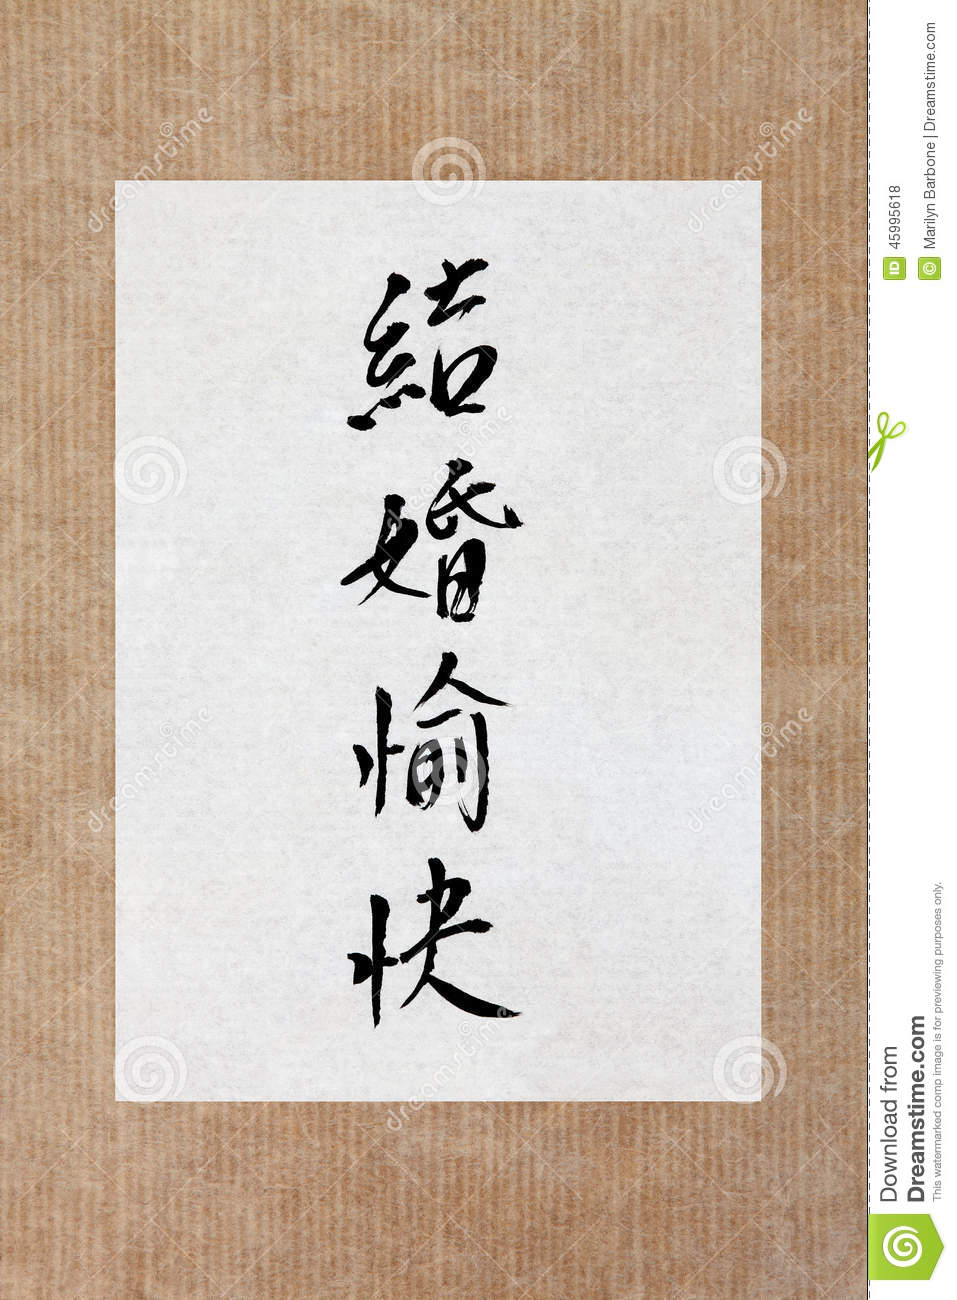 Happy Marriage Stock Photo Image Of Paper Fortune